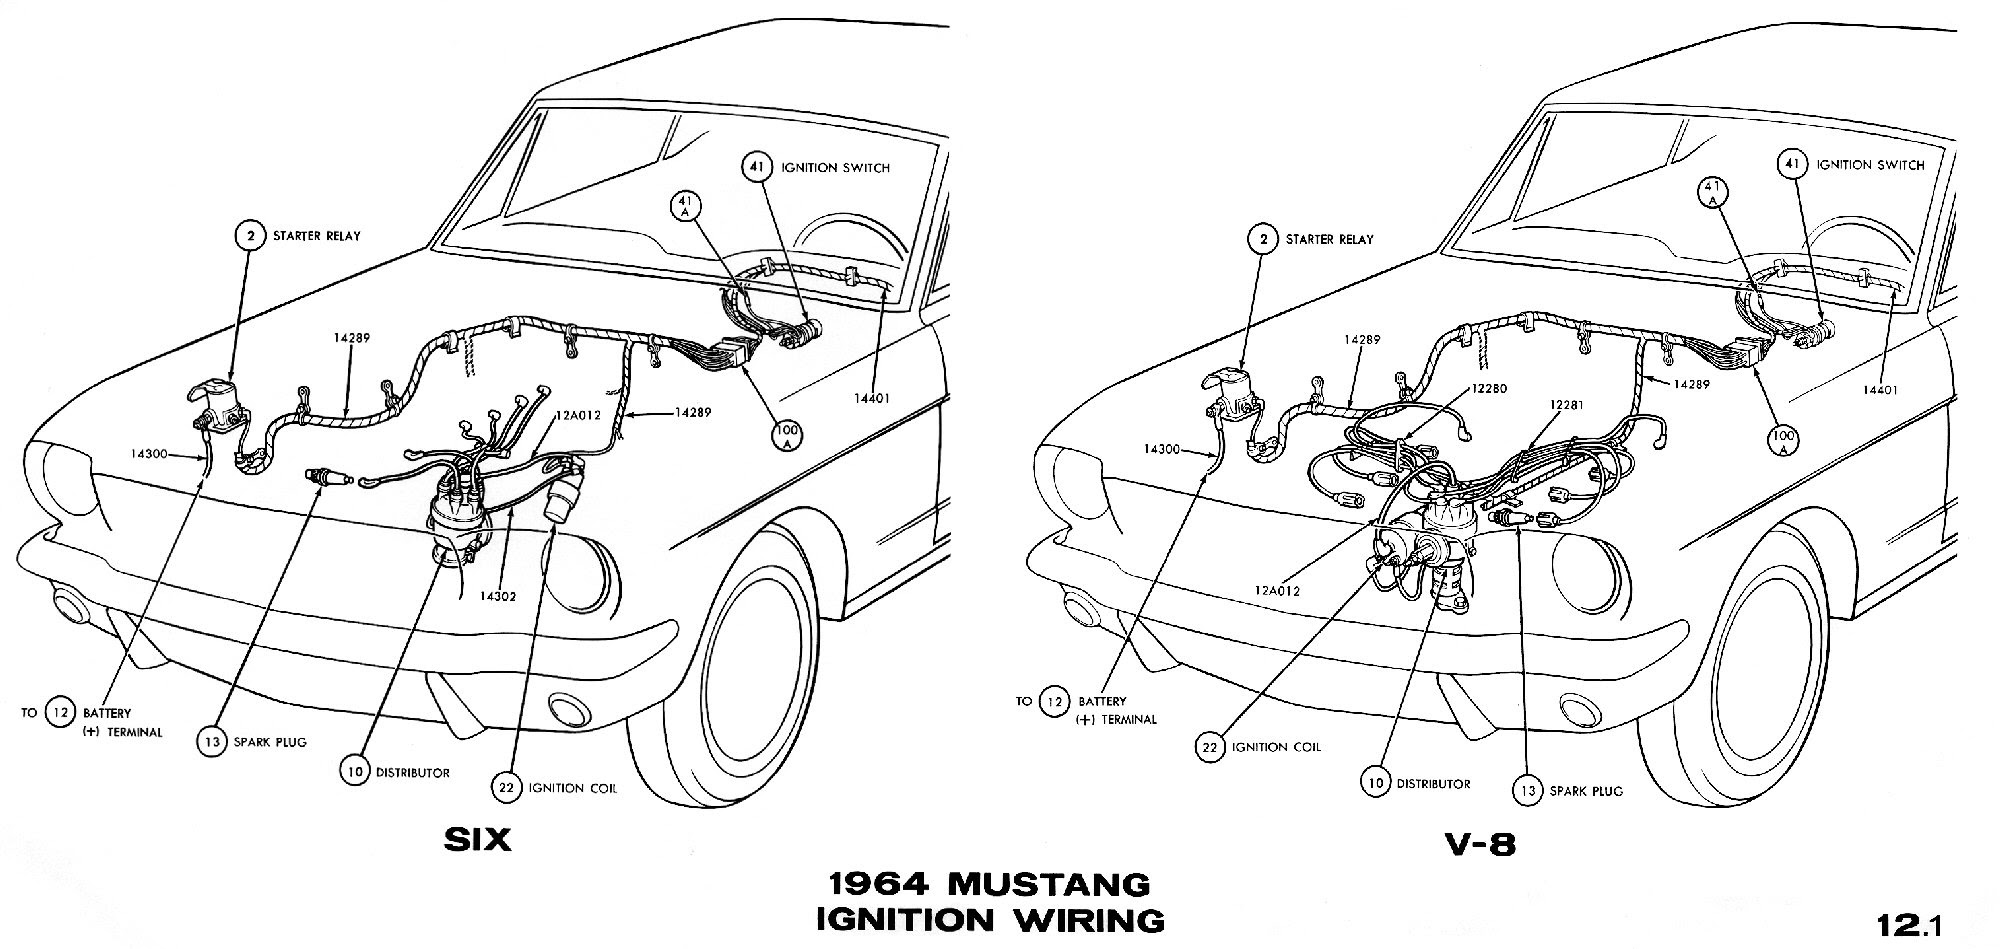 1968 Mustang Starter Relay Wiring Diagram Wiring Diagram Verison Verison Lastanzadeltempo It